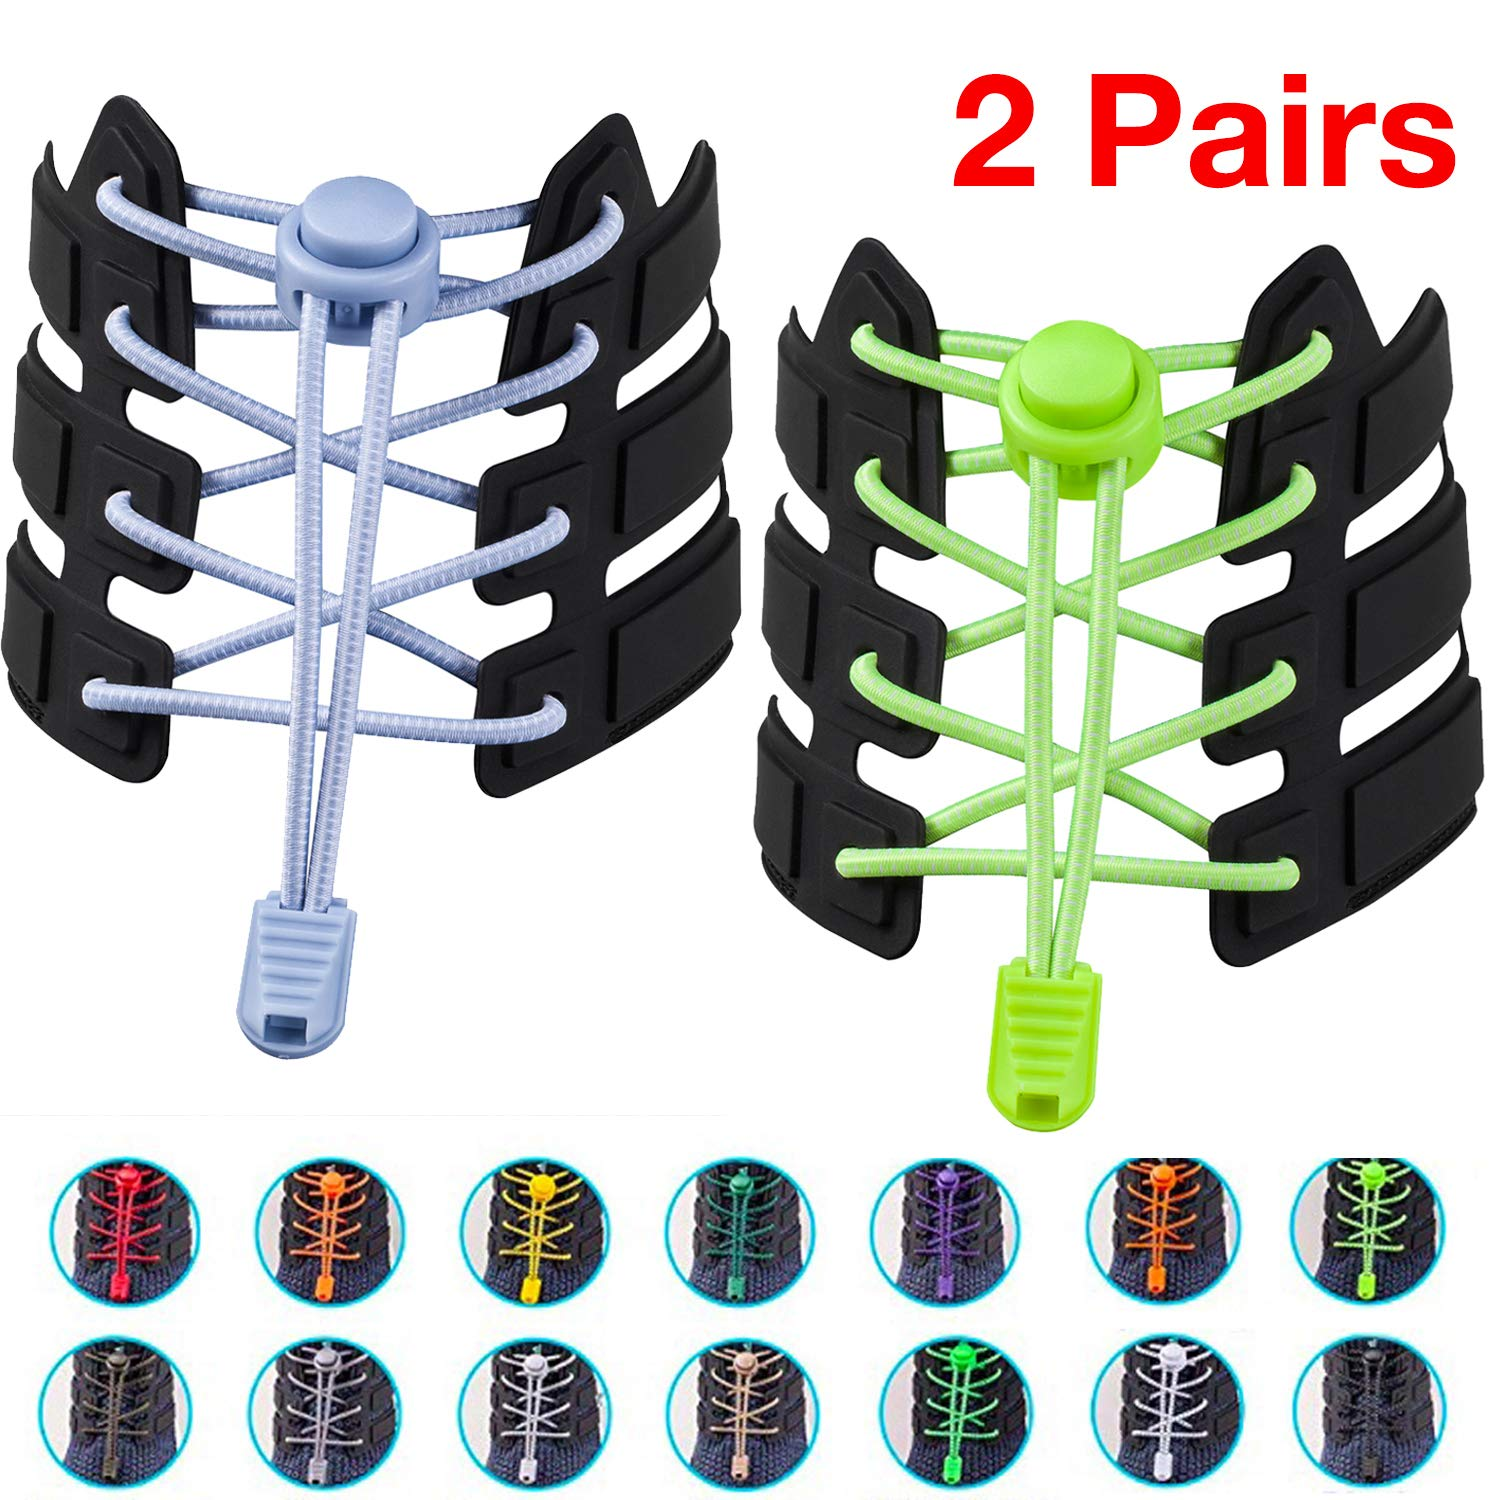 Adjustable Tieless Rubber Shoe Laces Strings Sneakers Boots Board and Casual Shoes Joruby Shoelaces Women Shoe Laces Elastic No Tie Shoelaces for Men Kids and Adults